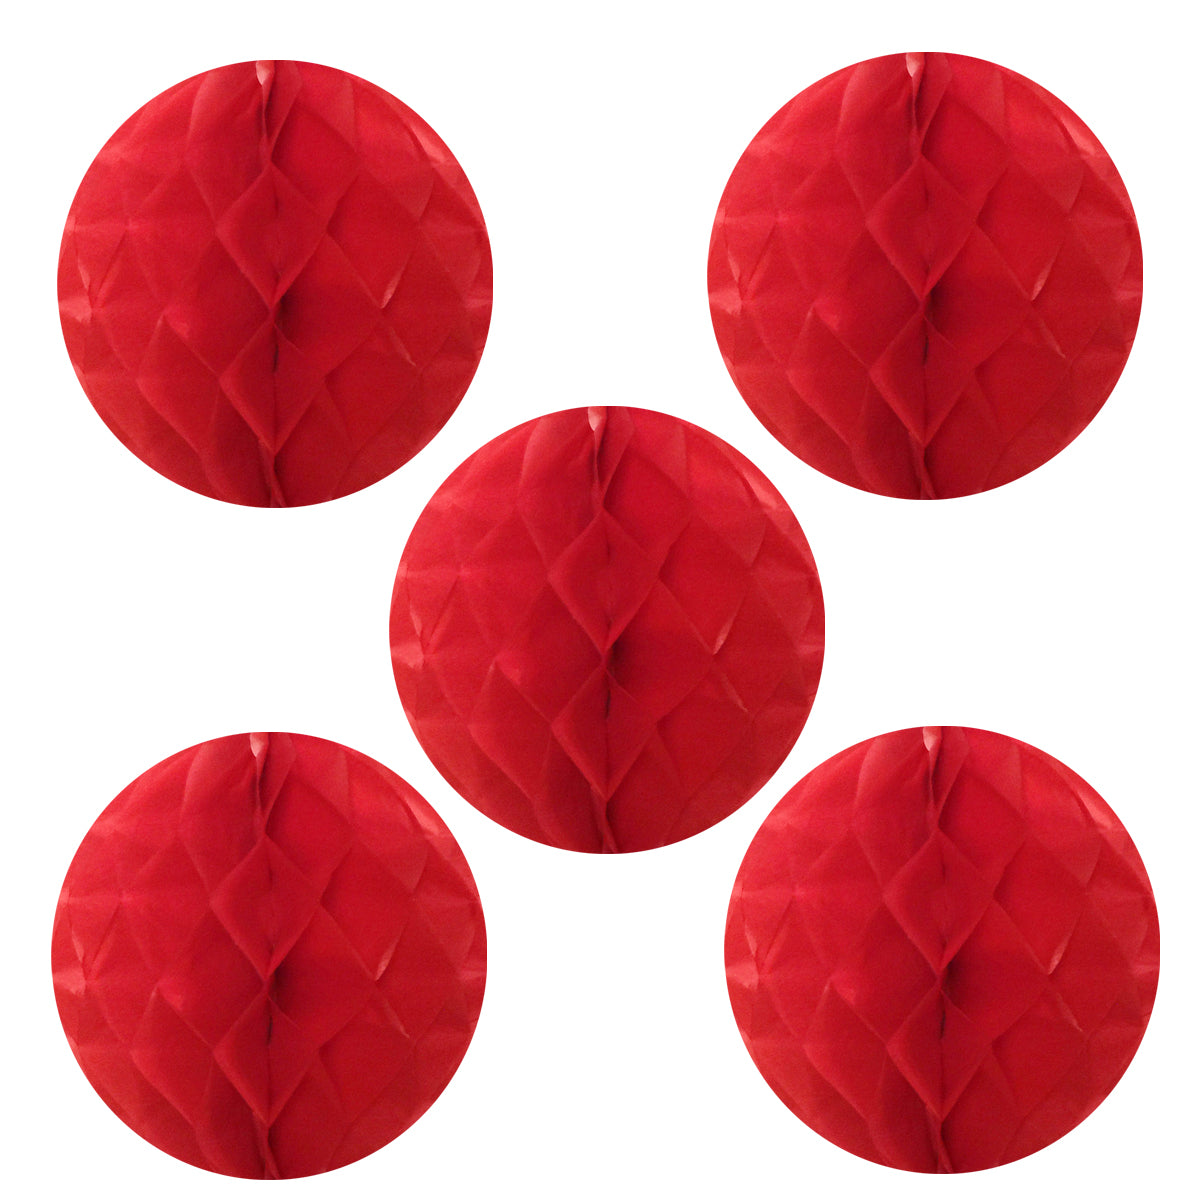 "Wrapables 6"" Set of 5 Tissue Honeycomb Ball Party Decorations"